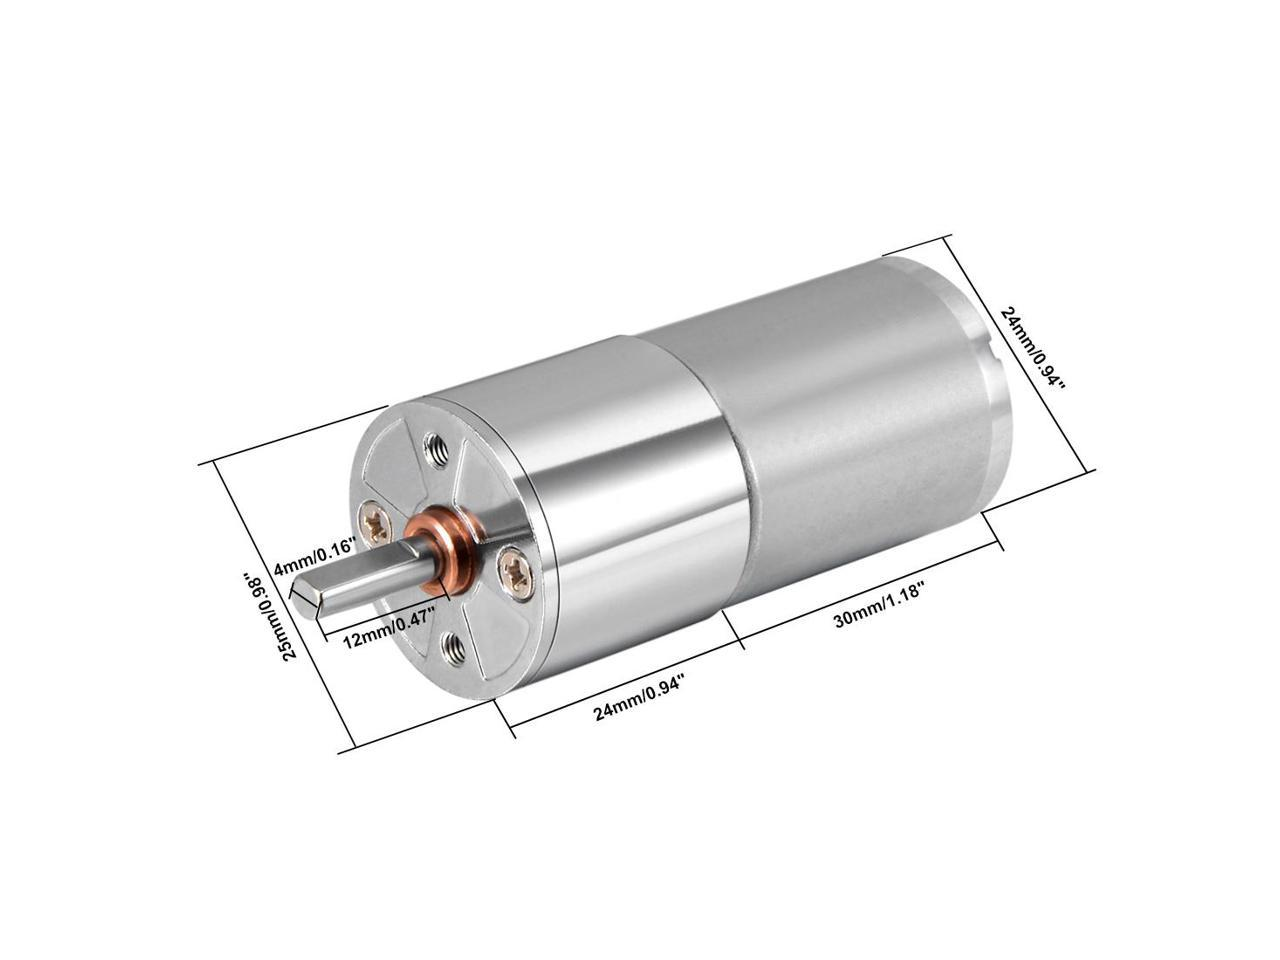 Super Powerful 30RPM GEARED REDUCTION MOTOR NEW Free Ship 3 TO 12VDC